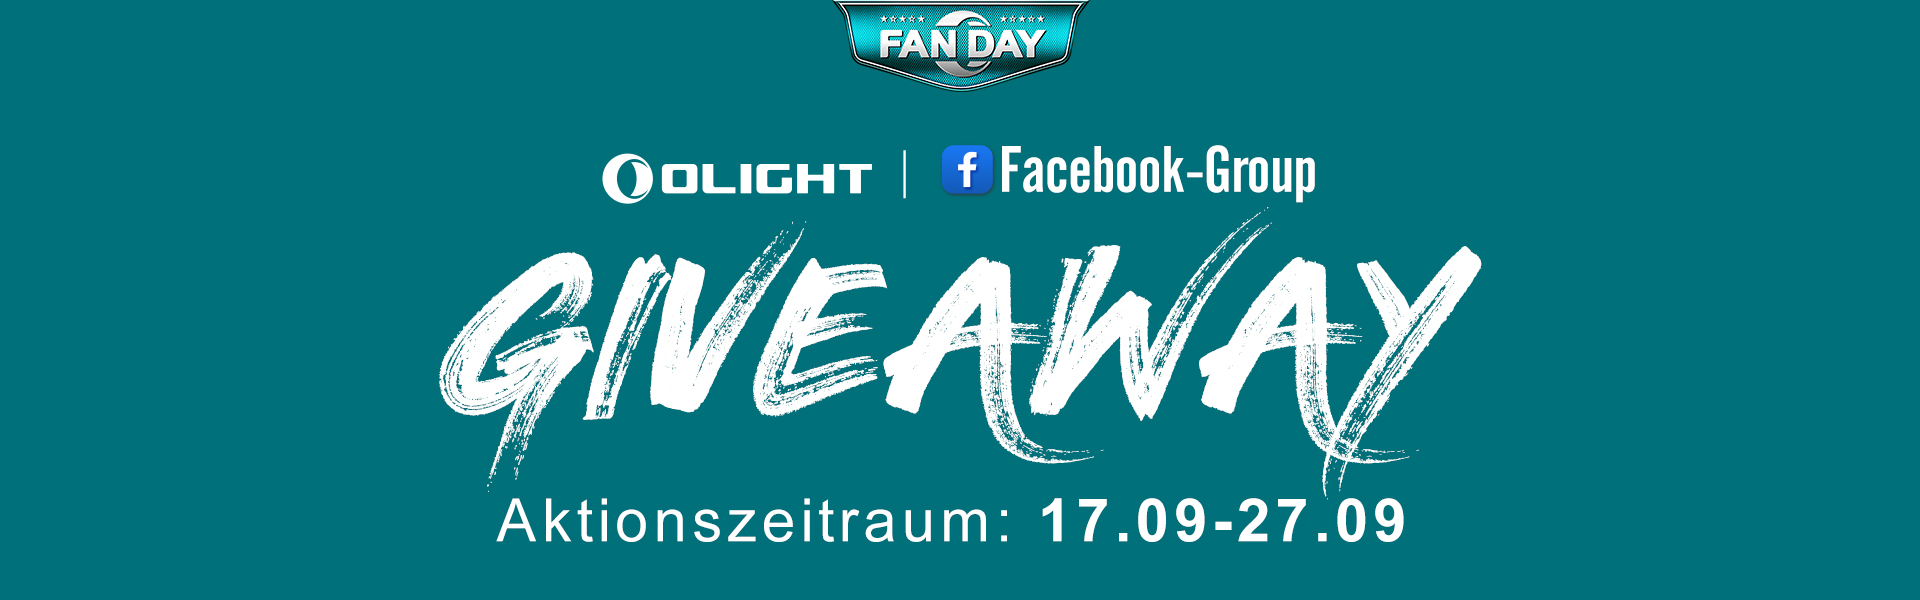 #GIVEAWAY in Olight Facebook-Gruppe